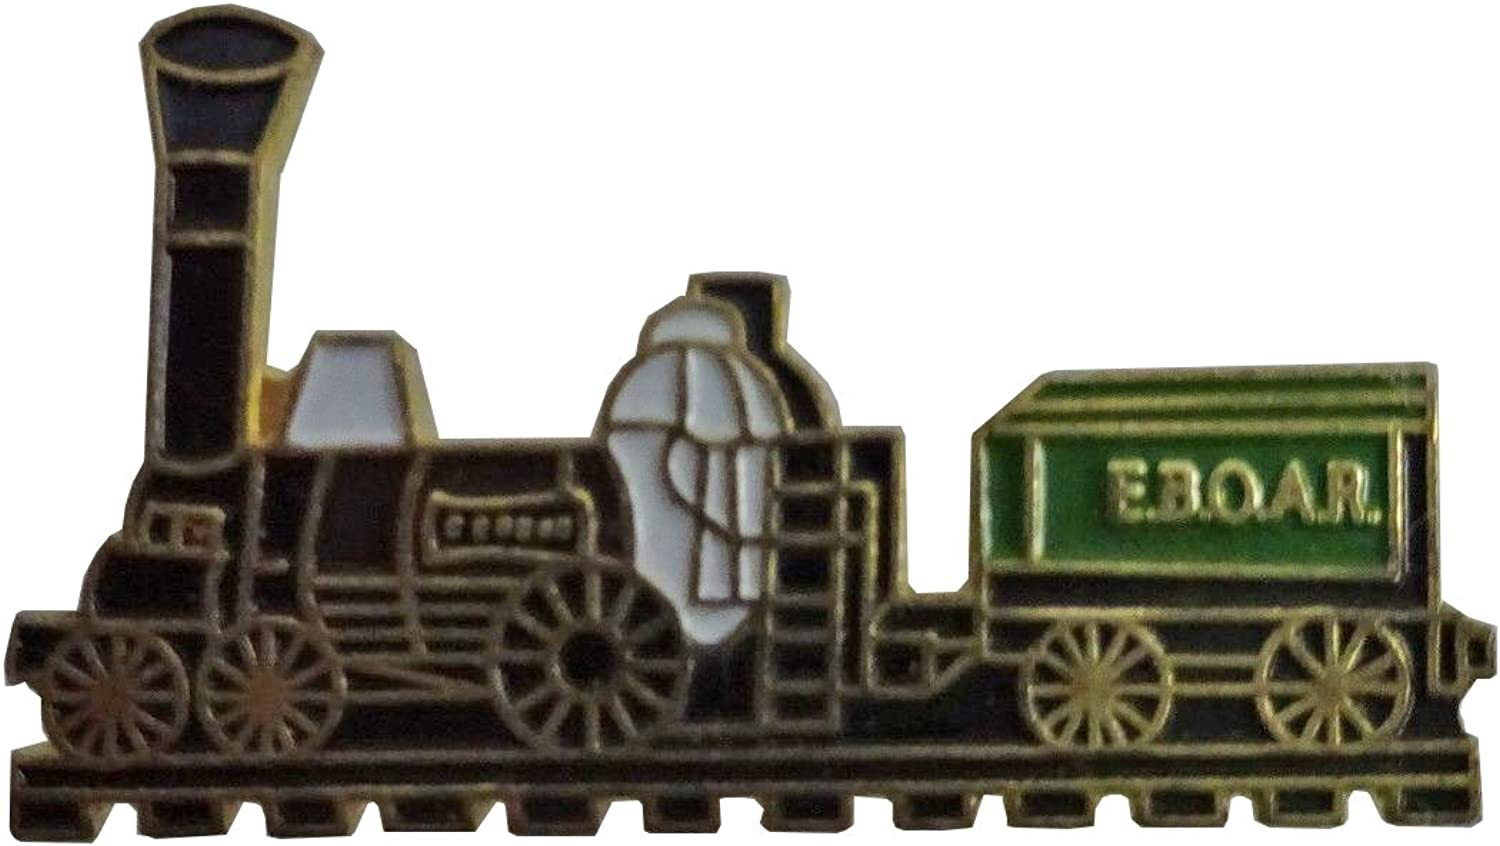 Train Engine Vintage Green  lapel pin about a inch long  Very nice  New